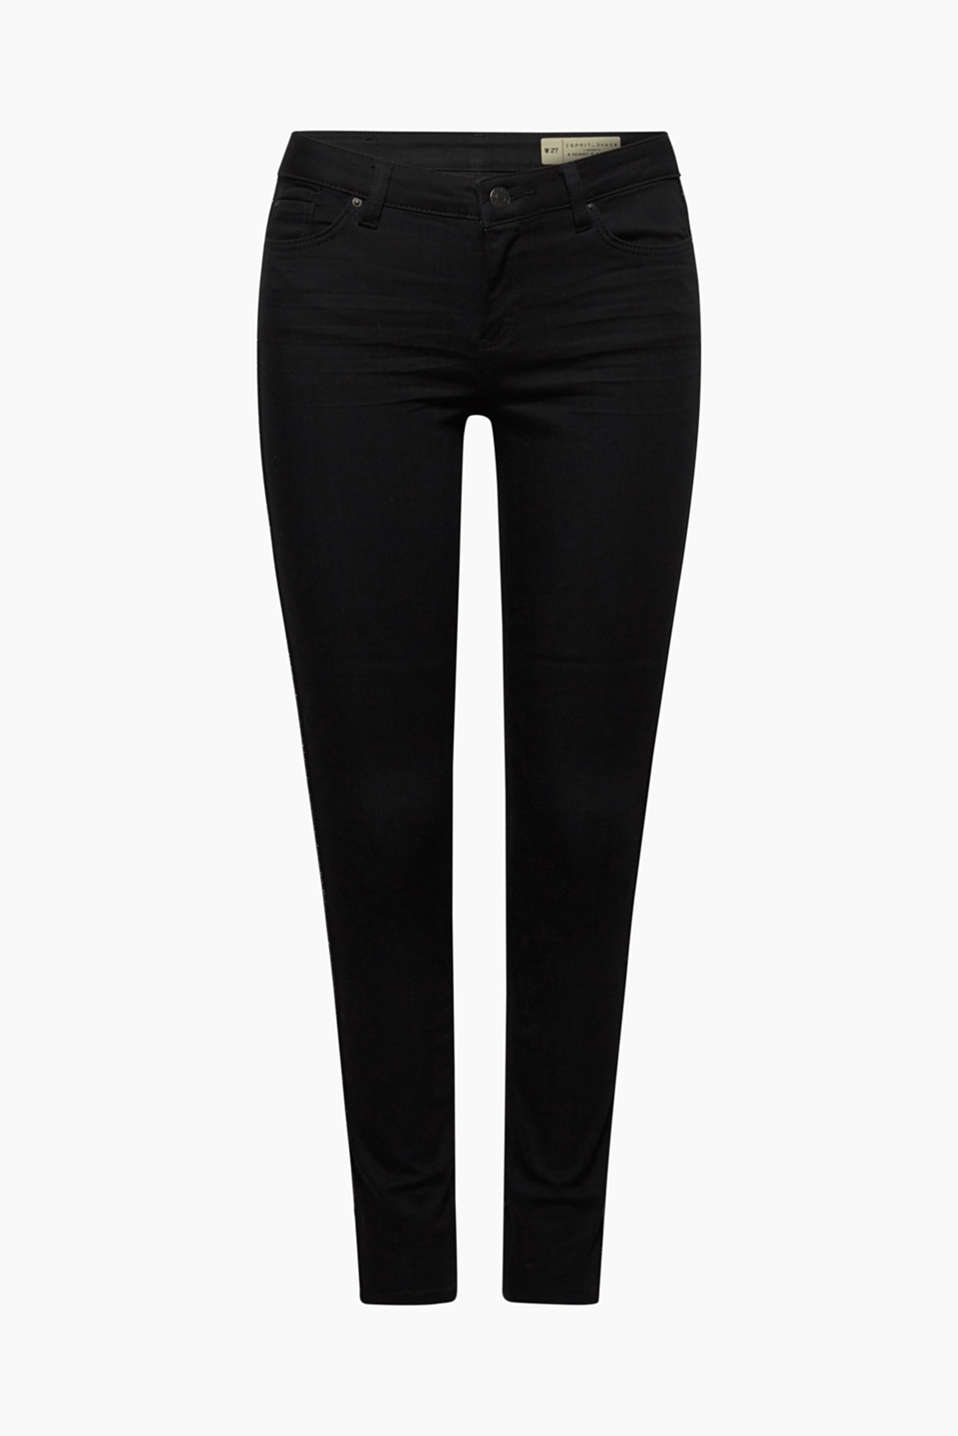 Cool denim, a skin-tight fit and elegant, glittery tuxedo stripes - these deep black stretch jeans have everything you need!